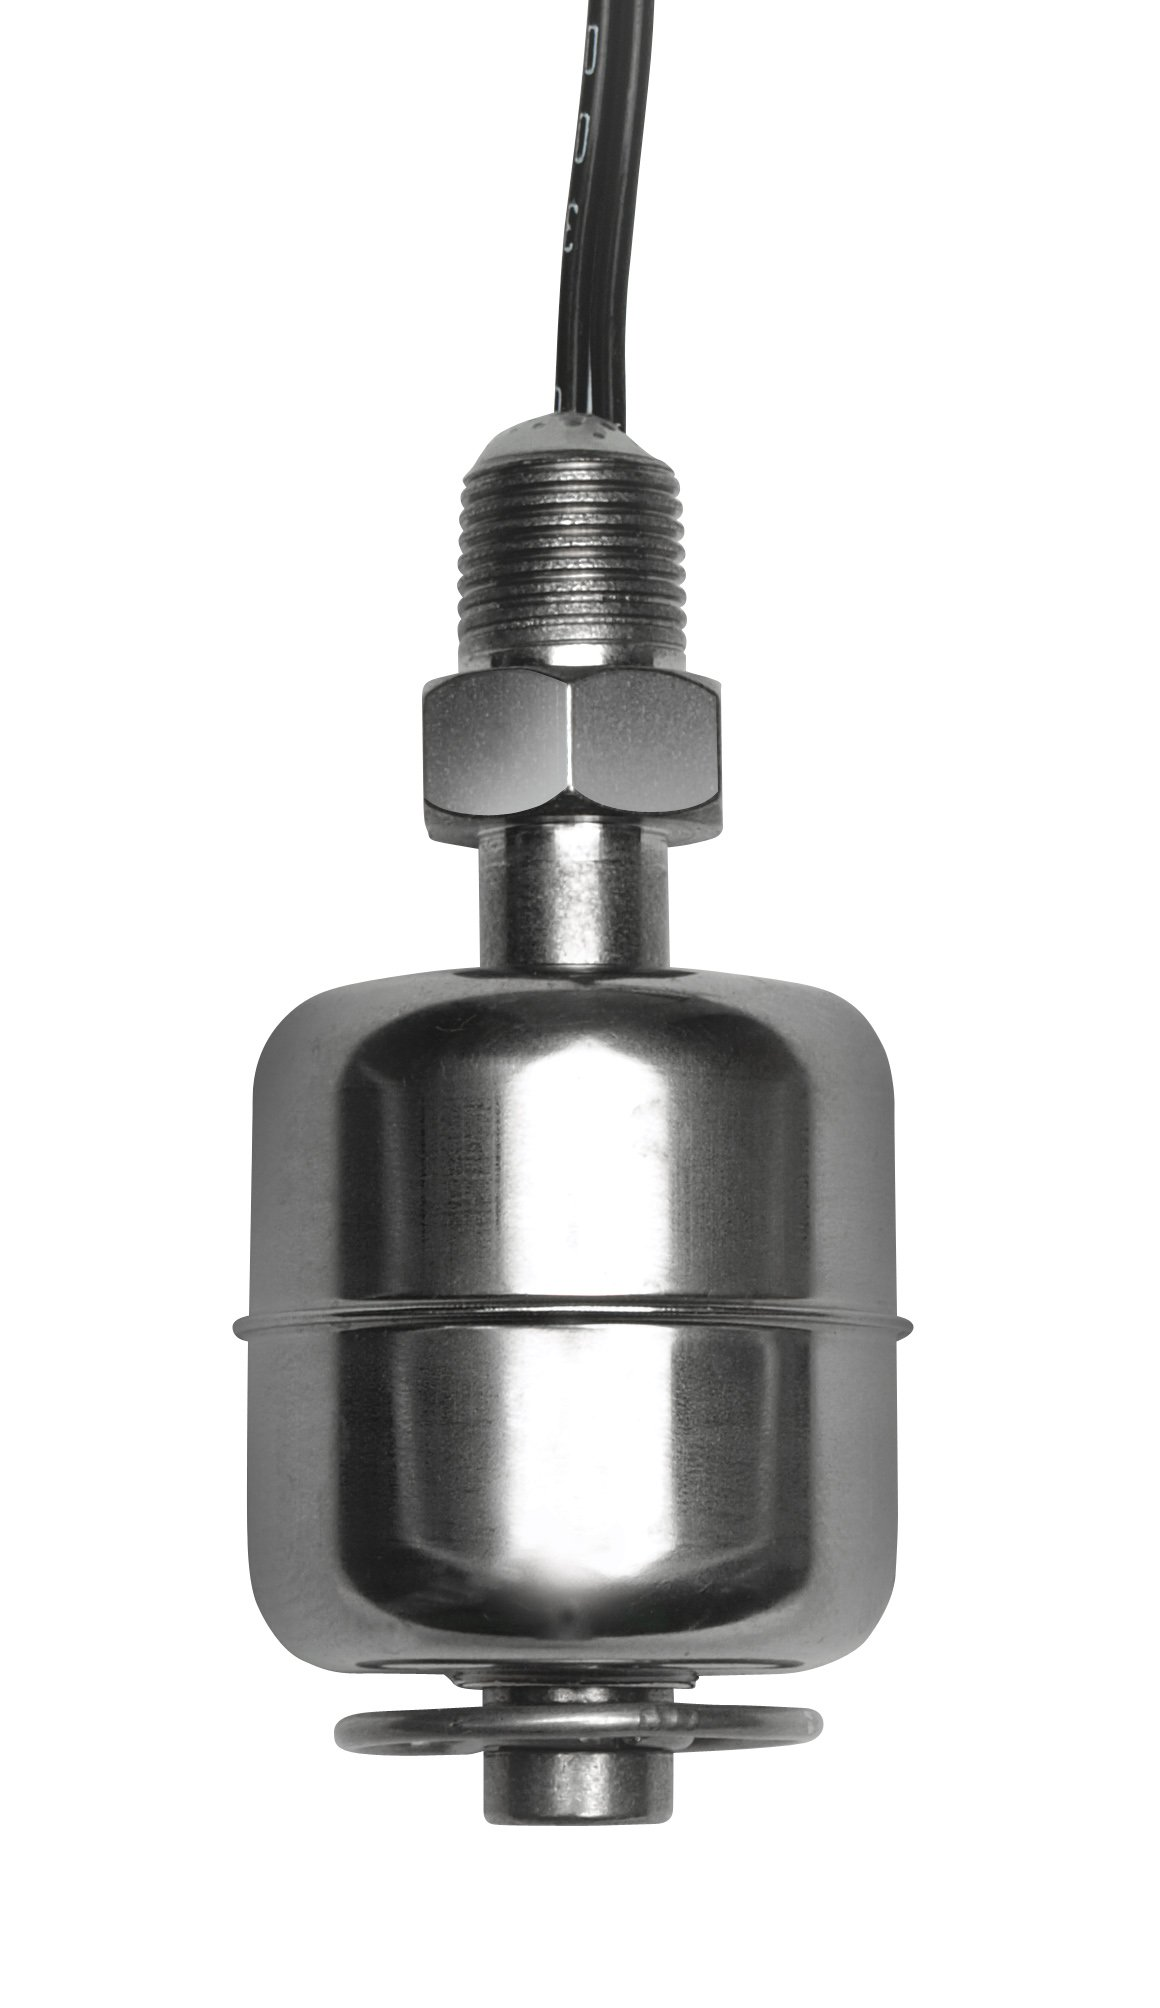 Madison M5000 316 Stainless Steel Miniature Liquid Level Switch with Stem, 30 VA SPST, 1/8 NPT, 300 psig Pressure